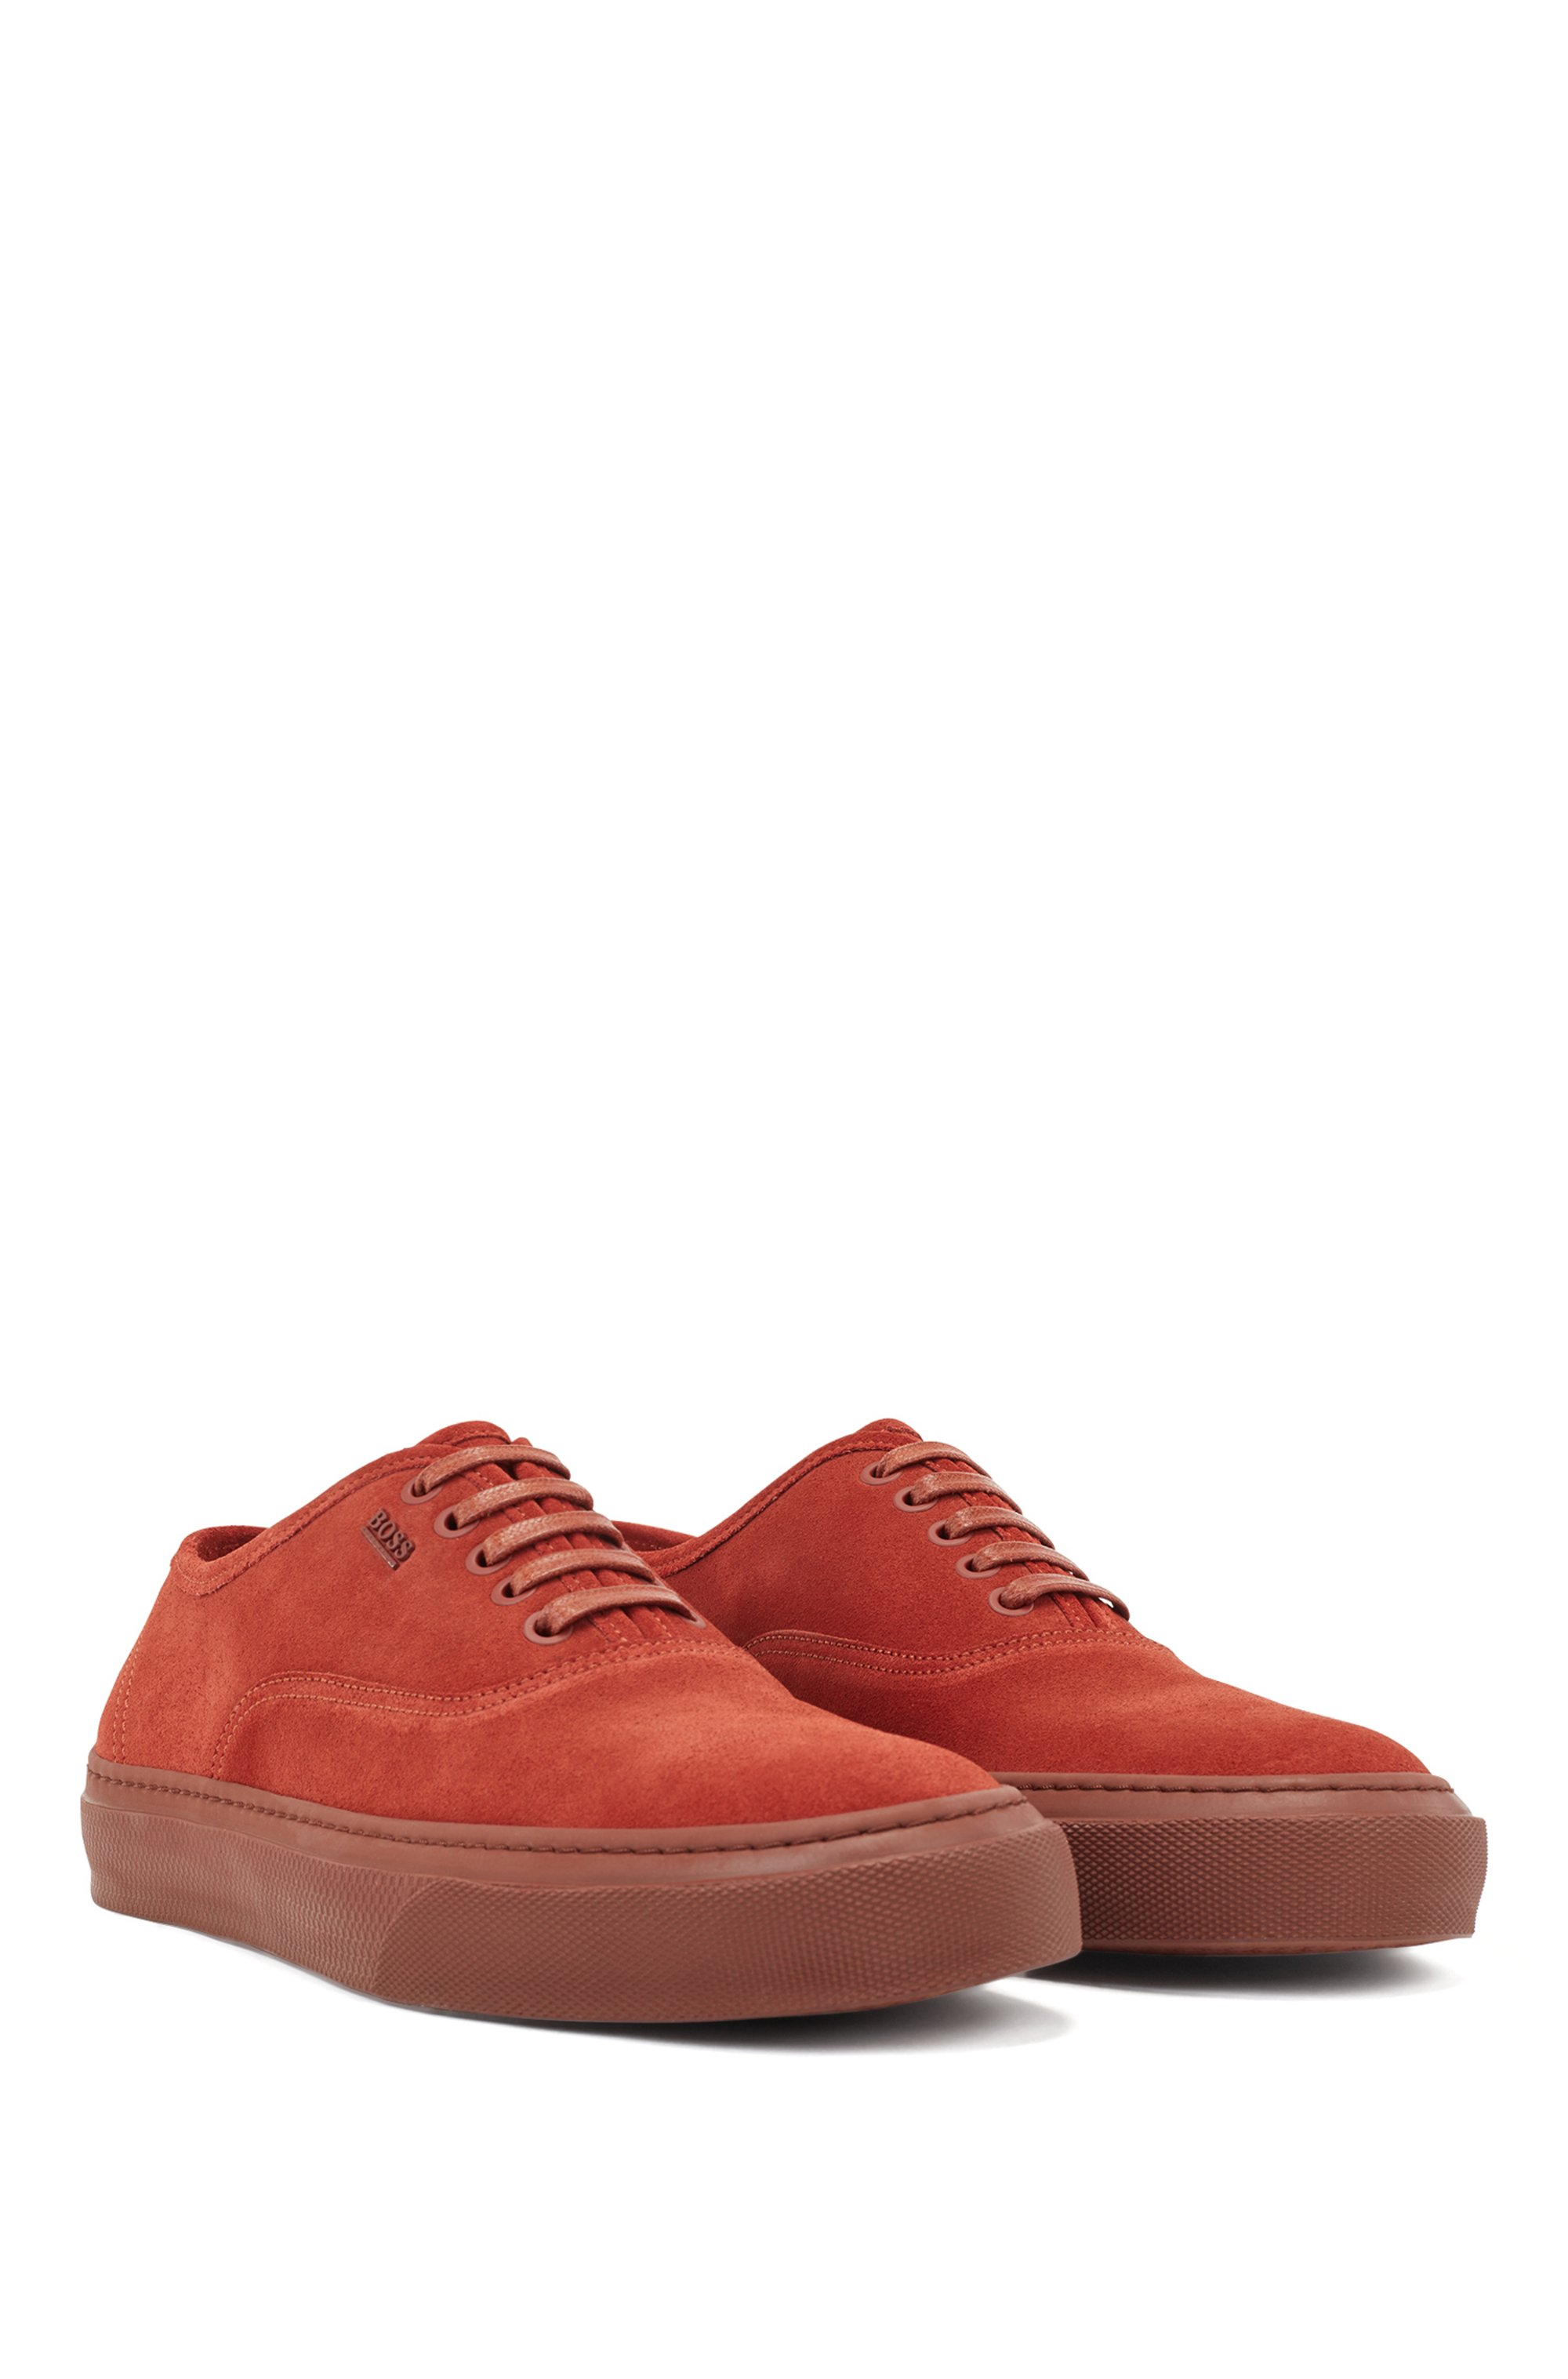 Italian-made trainers in suede with hardware logo